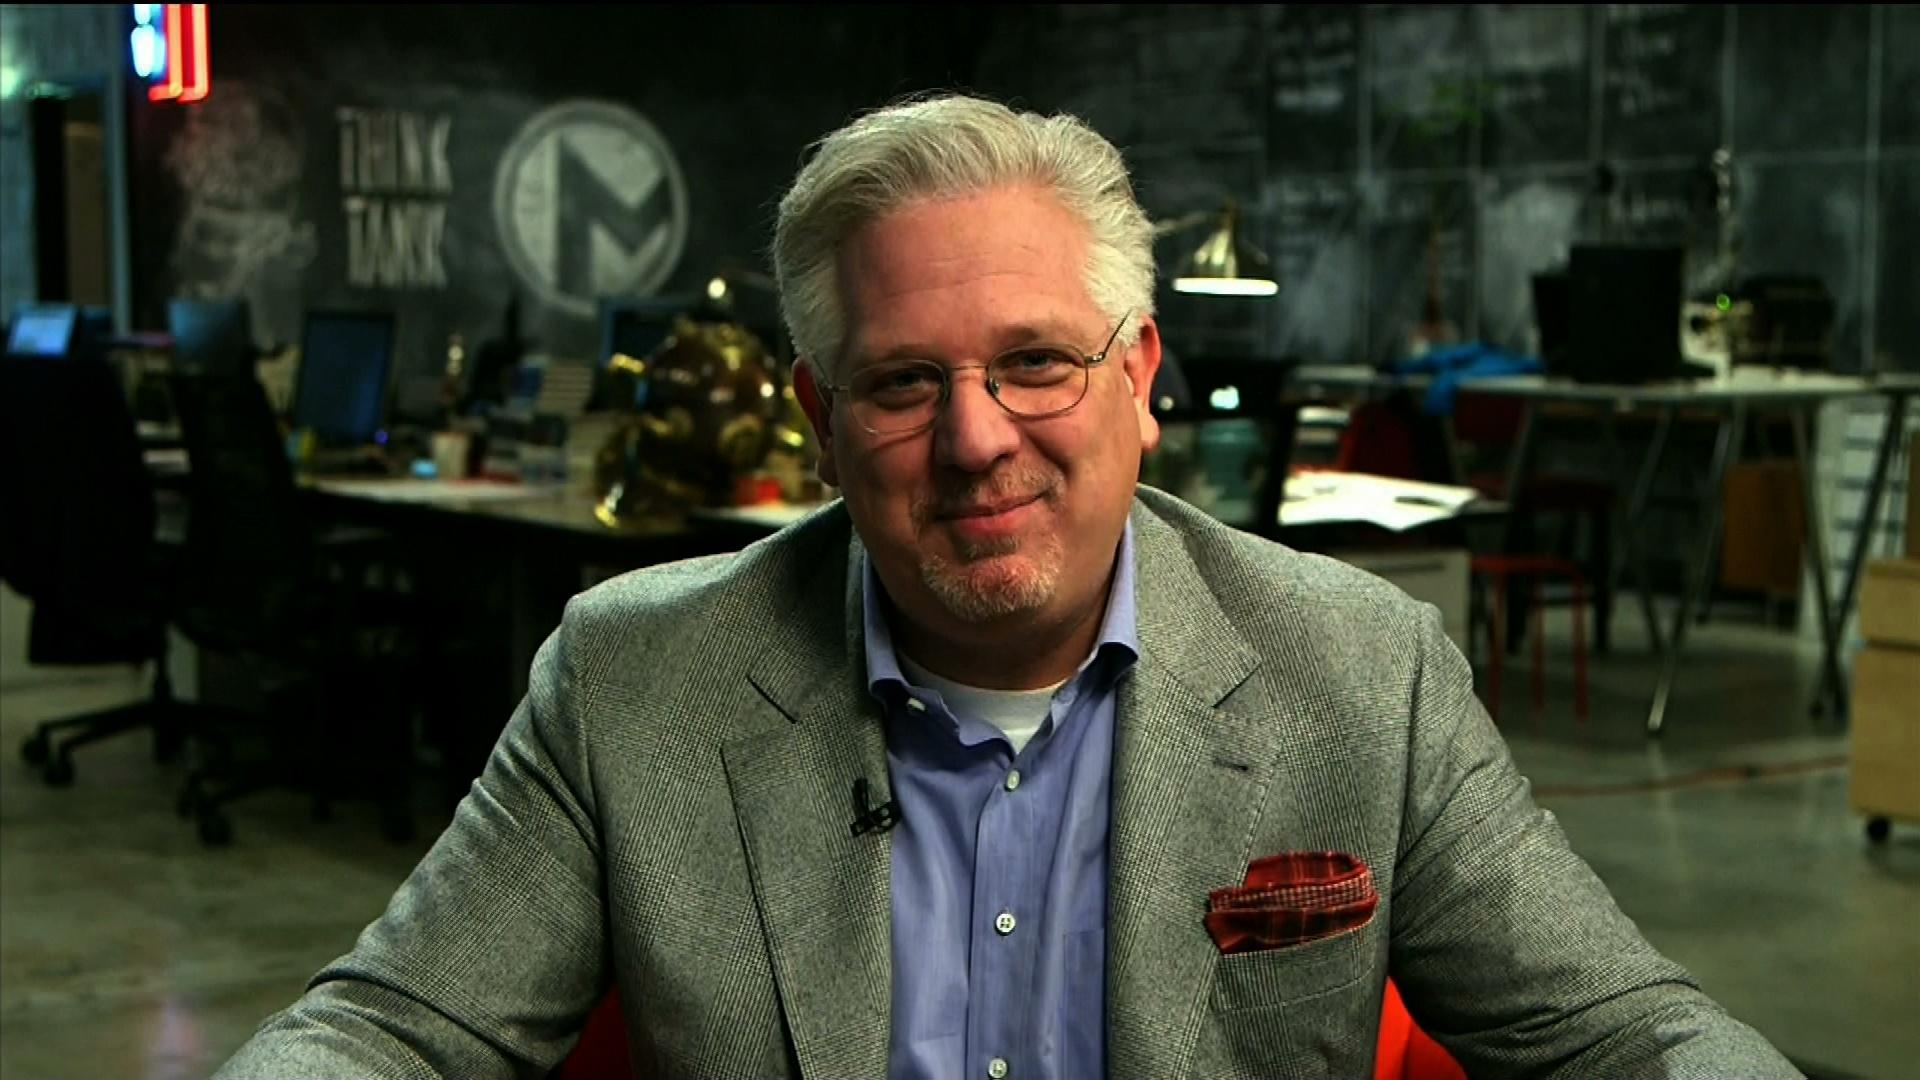 Author and Political Commentator Glenn Beck